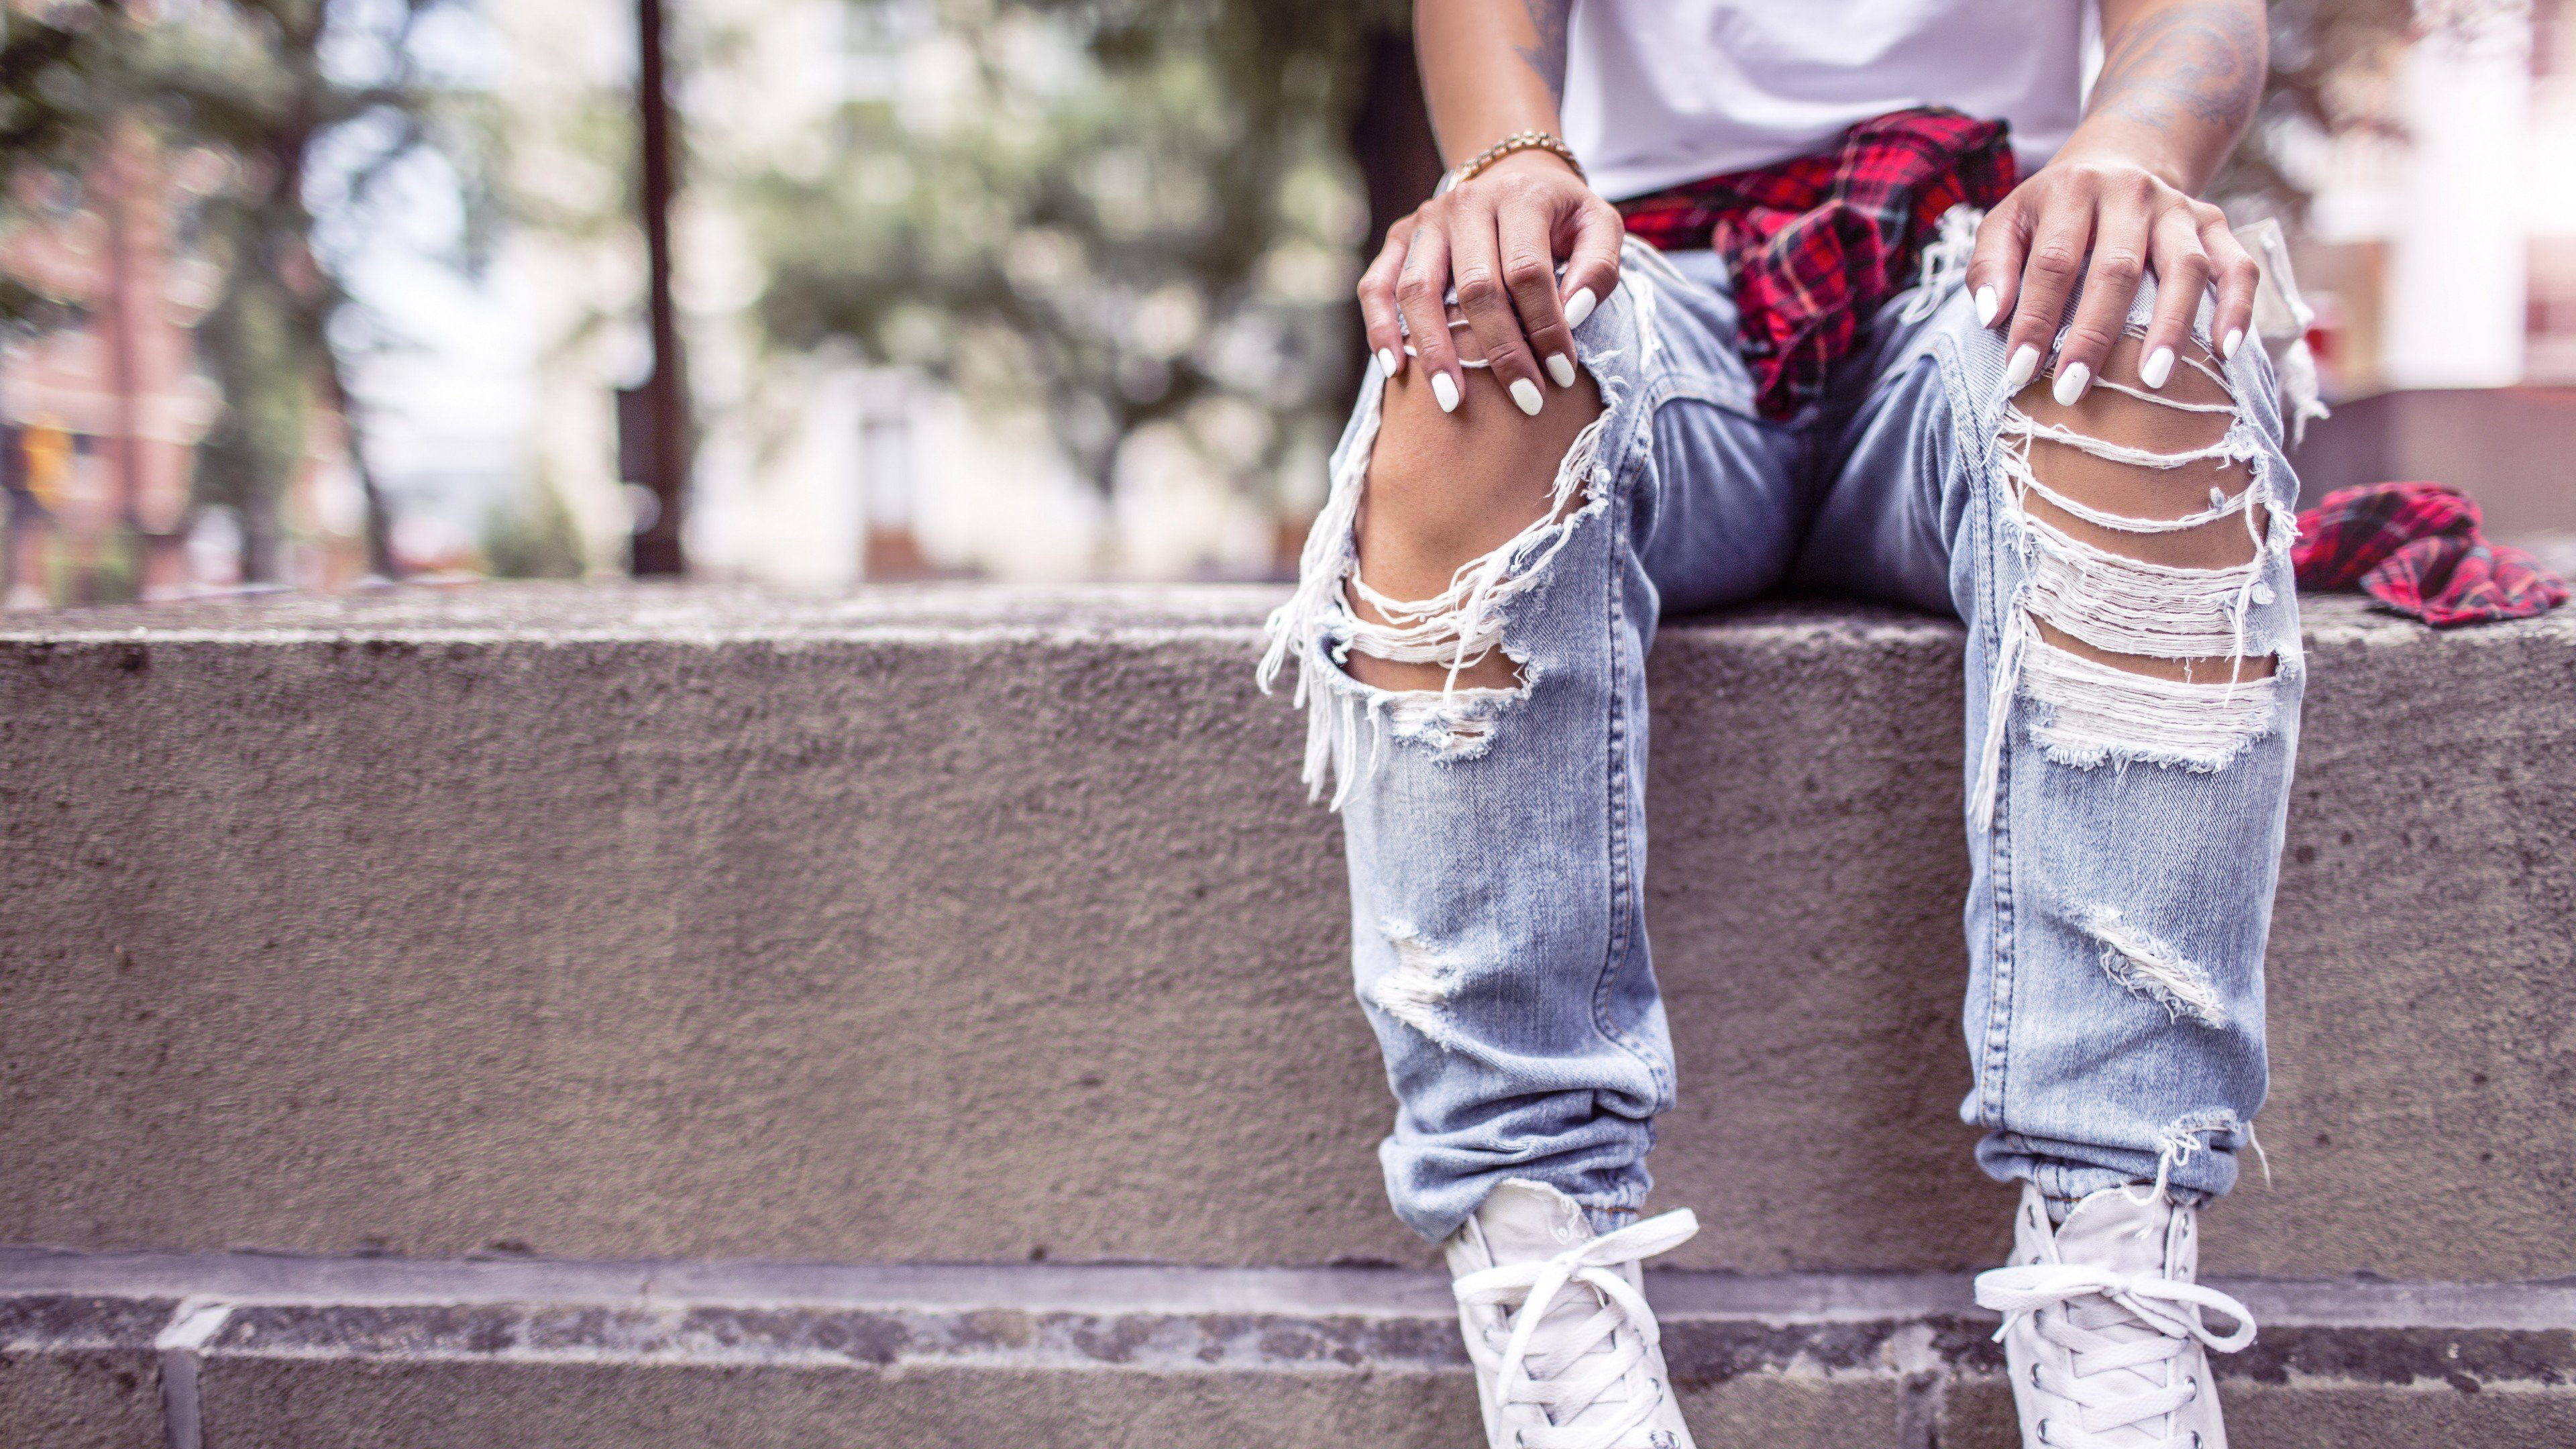 Girl Style Shoes Jeans, HD Lifestyle, 4k Wallpapers